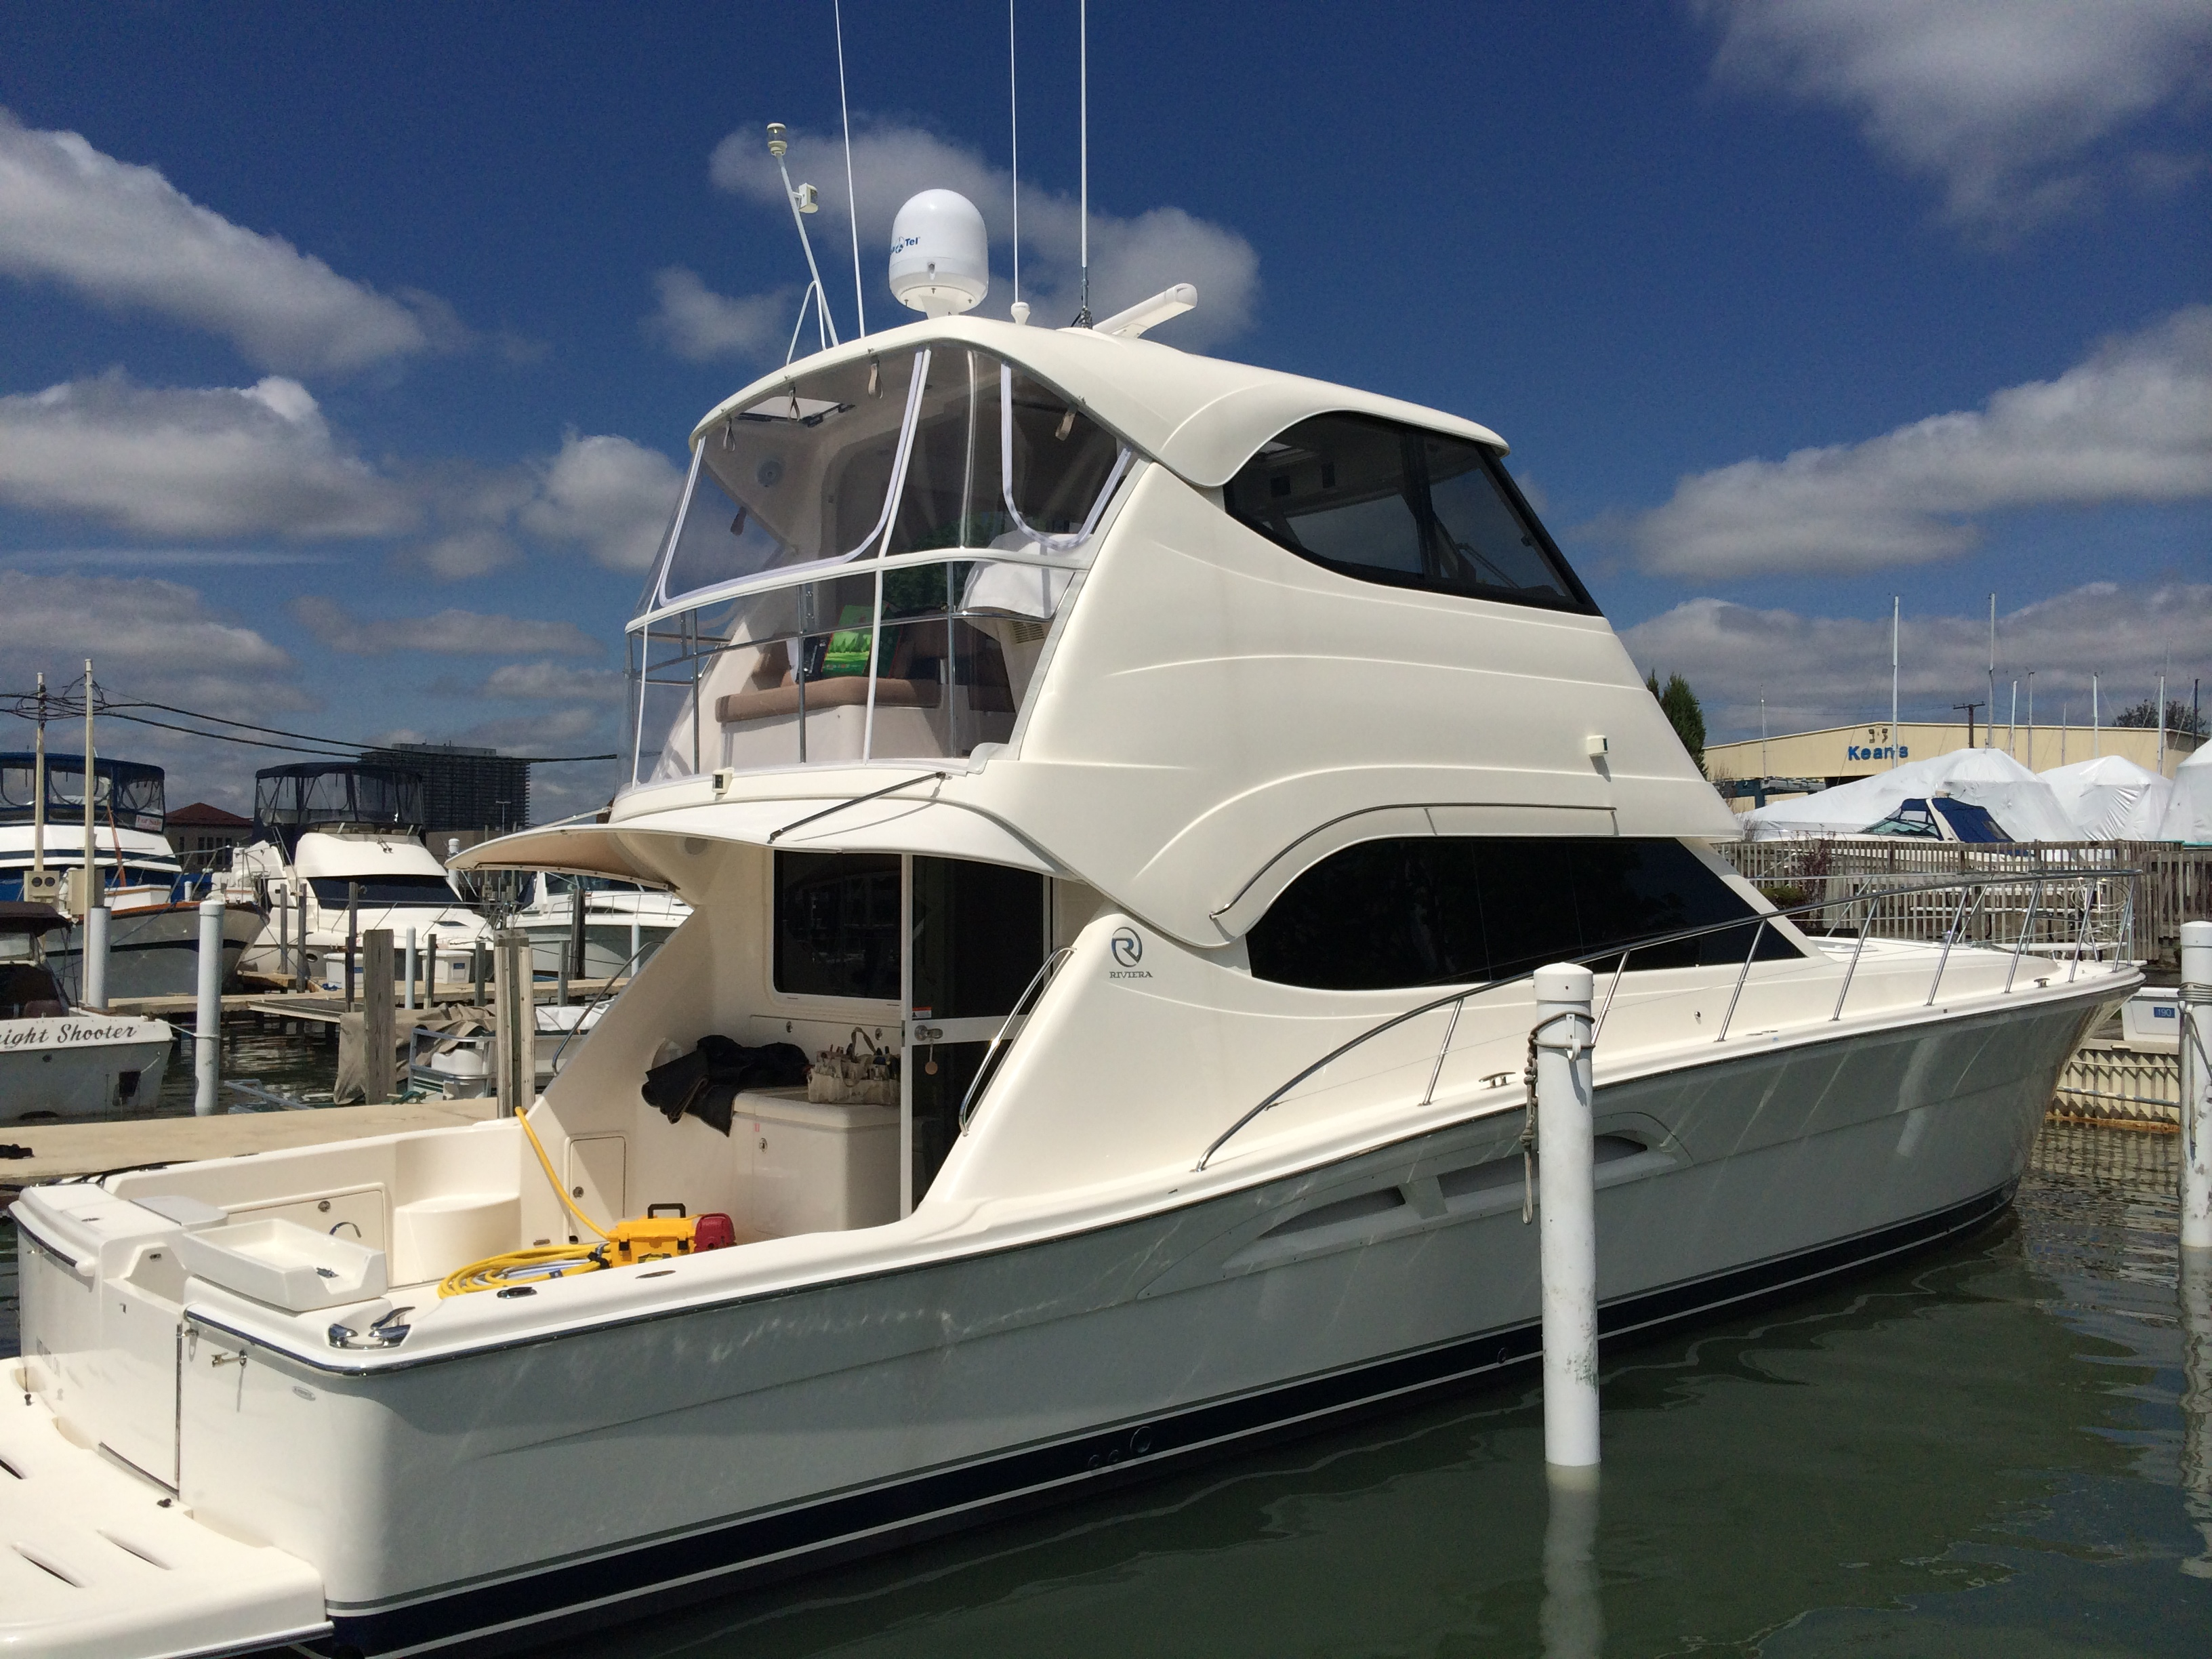 2015 Outstanding Achievement - Power Boats - Soft Enclosures (58' Riviera)